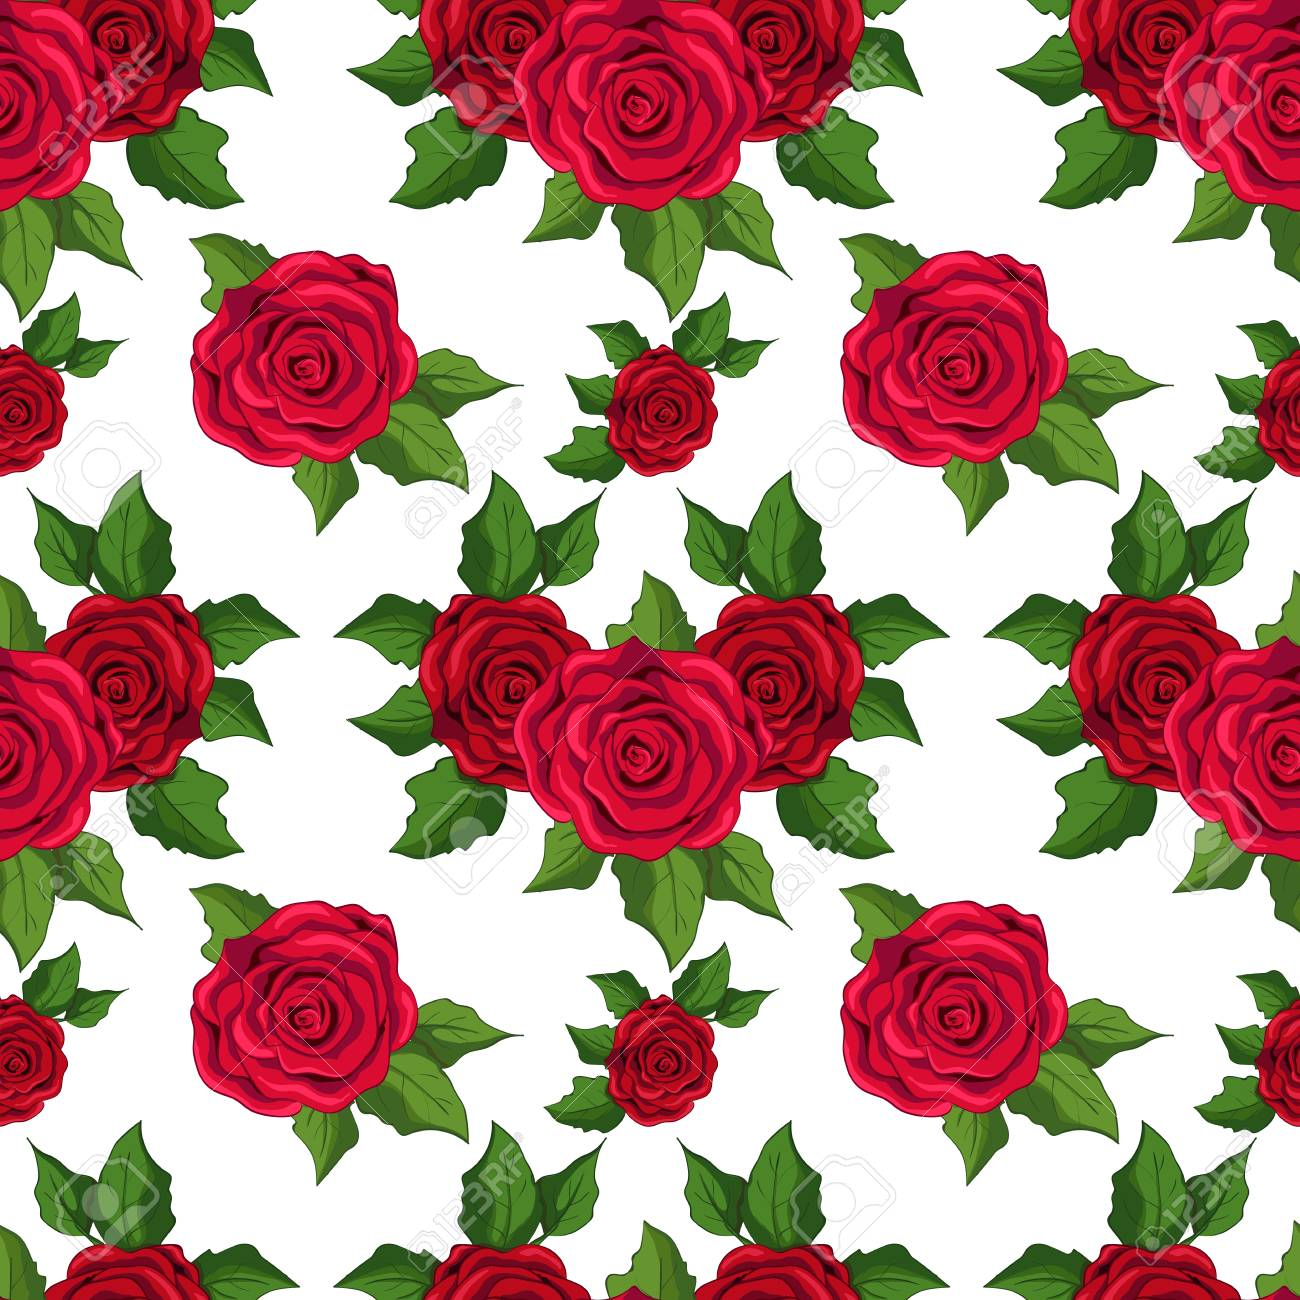 Seamless Floral Pattern Wallpaper With Red Roses On White Background Stock Vector